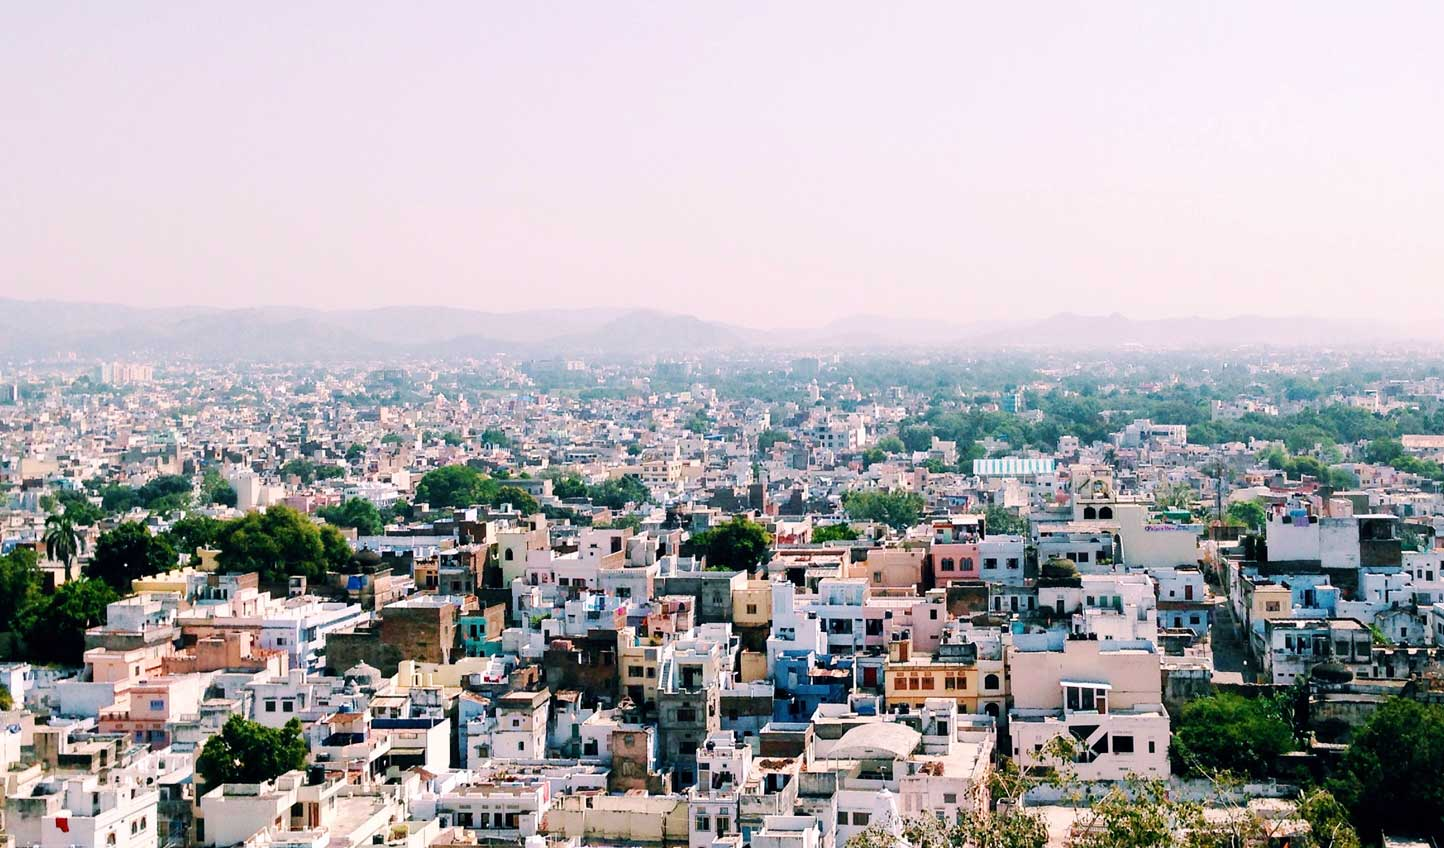 The pastel-hued skyline of Udaipur